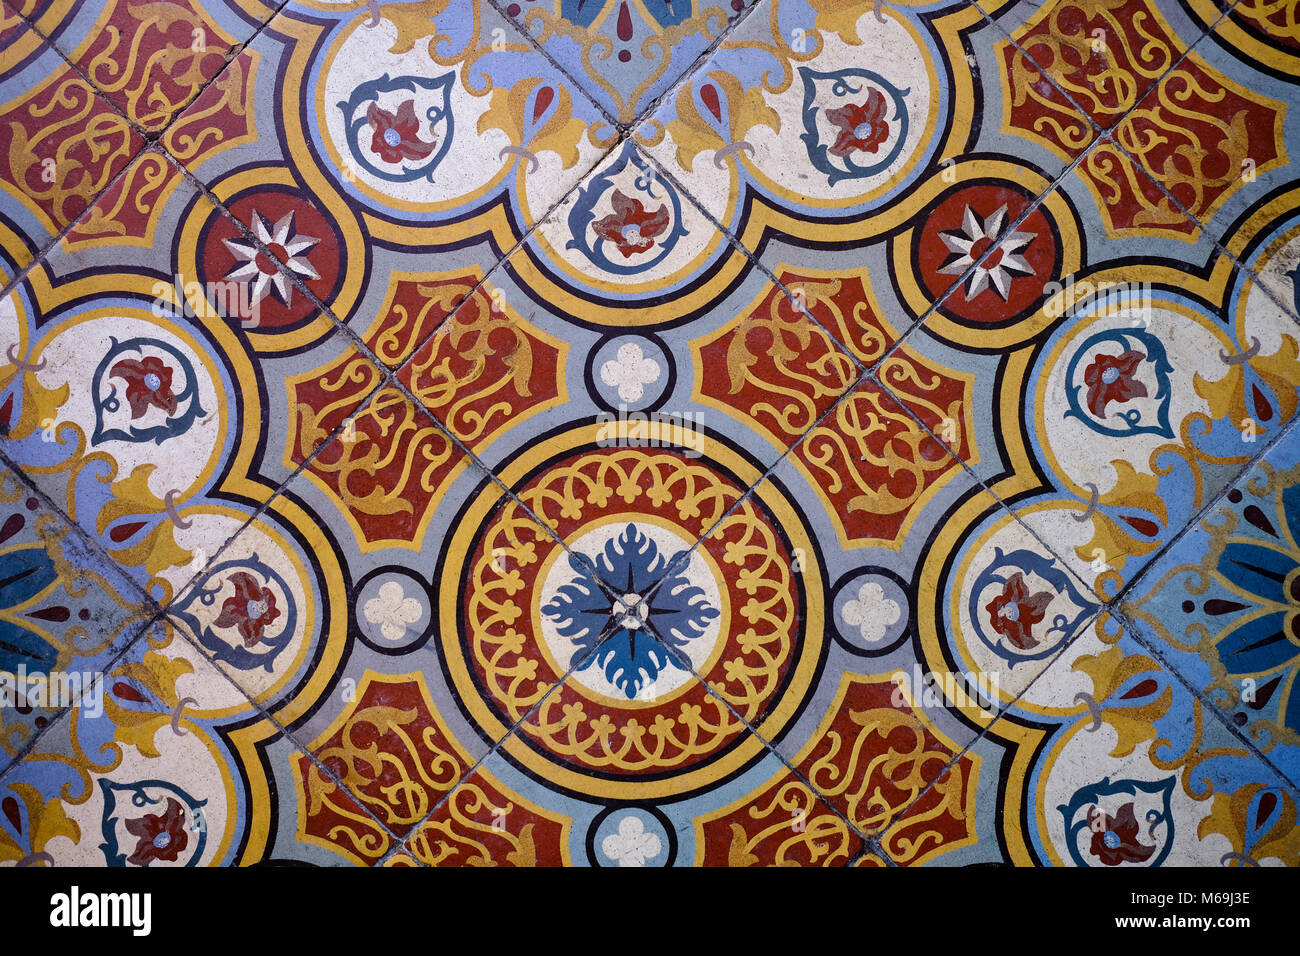 Old decorative ceramic floor. Condom. Le Gers Department, New Aquitaine, Midi Pyerenees. France Europe - Stock Image